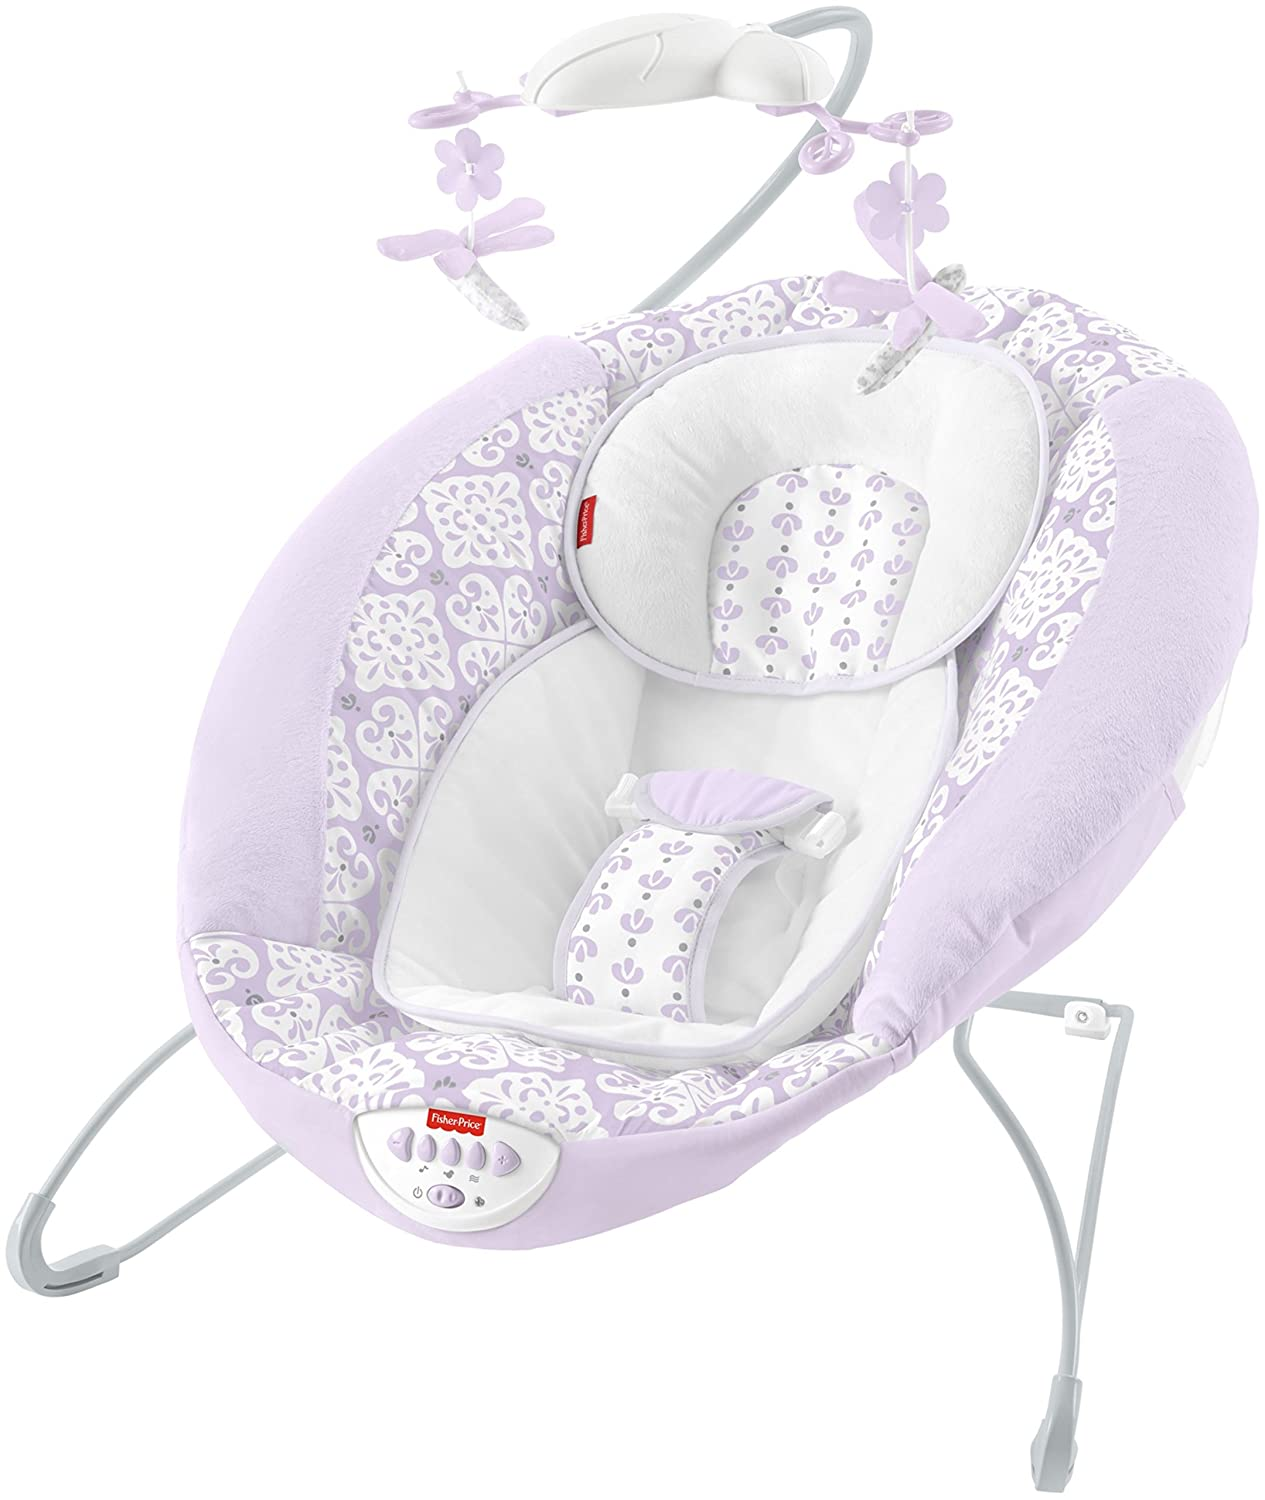 Fisher-Price Moonlight Meadow Deluxe Bouncer CHM82